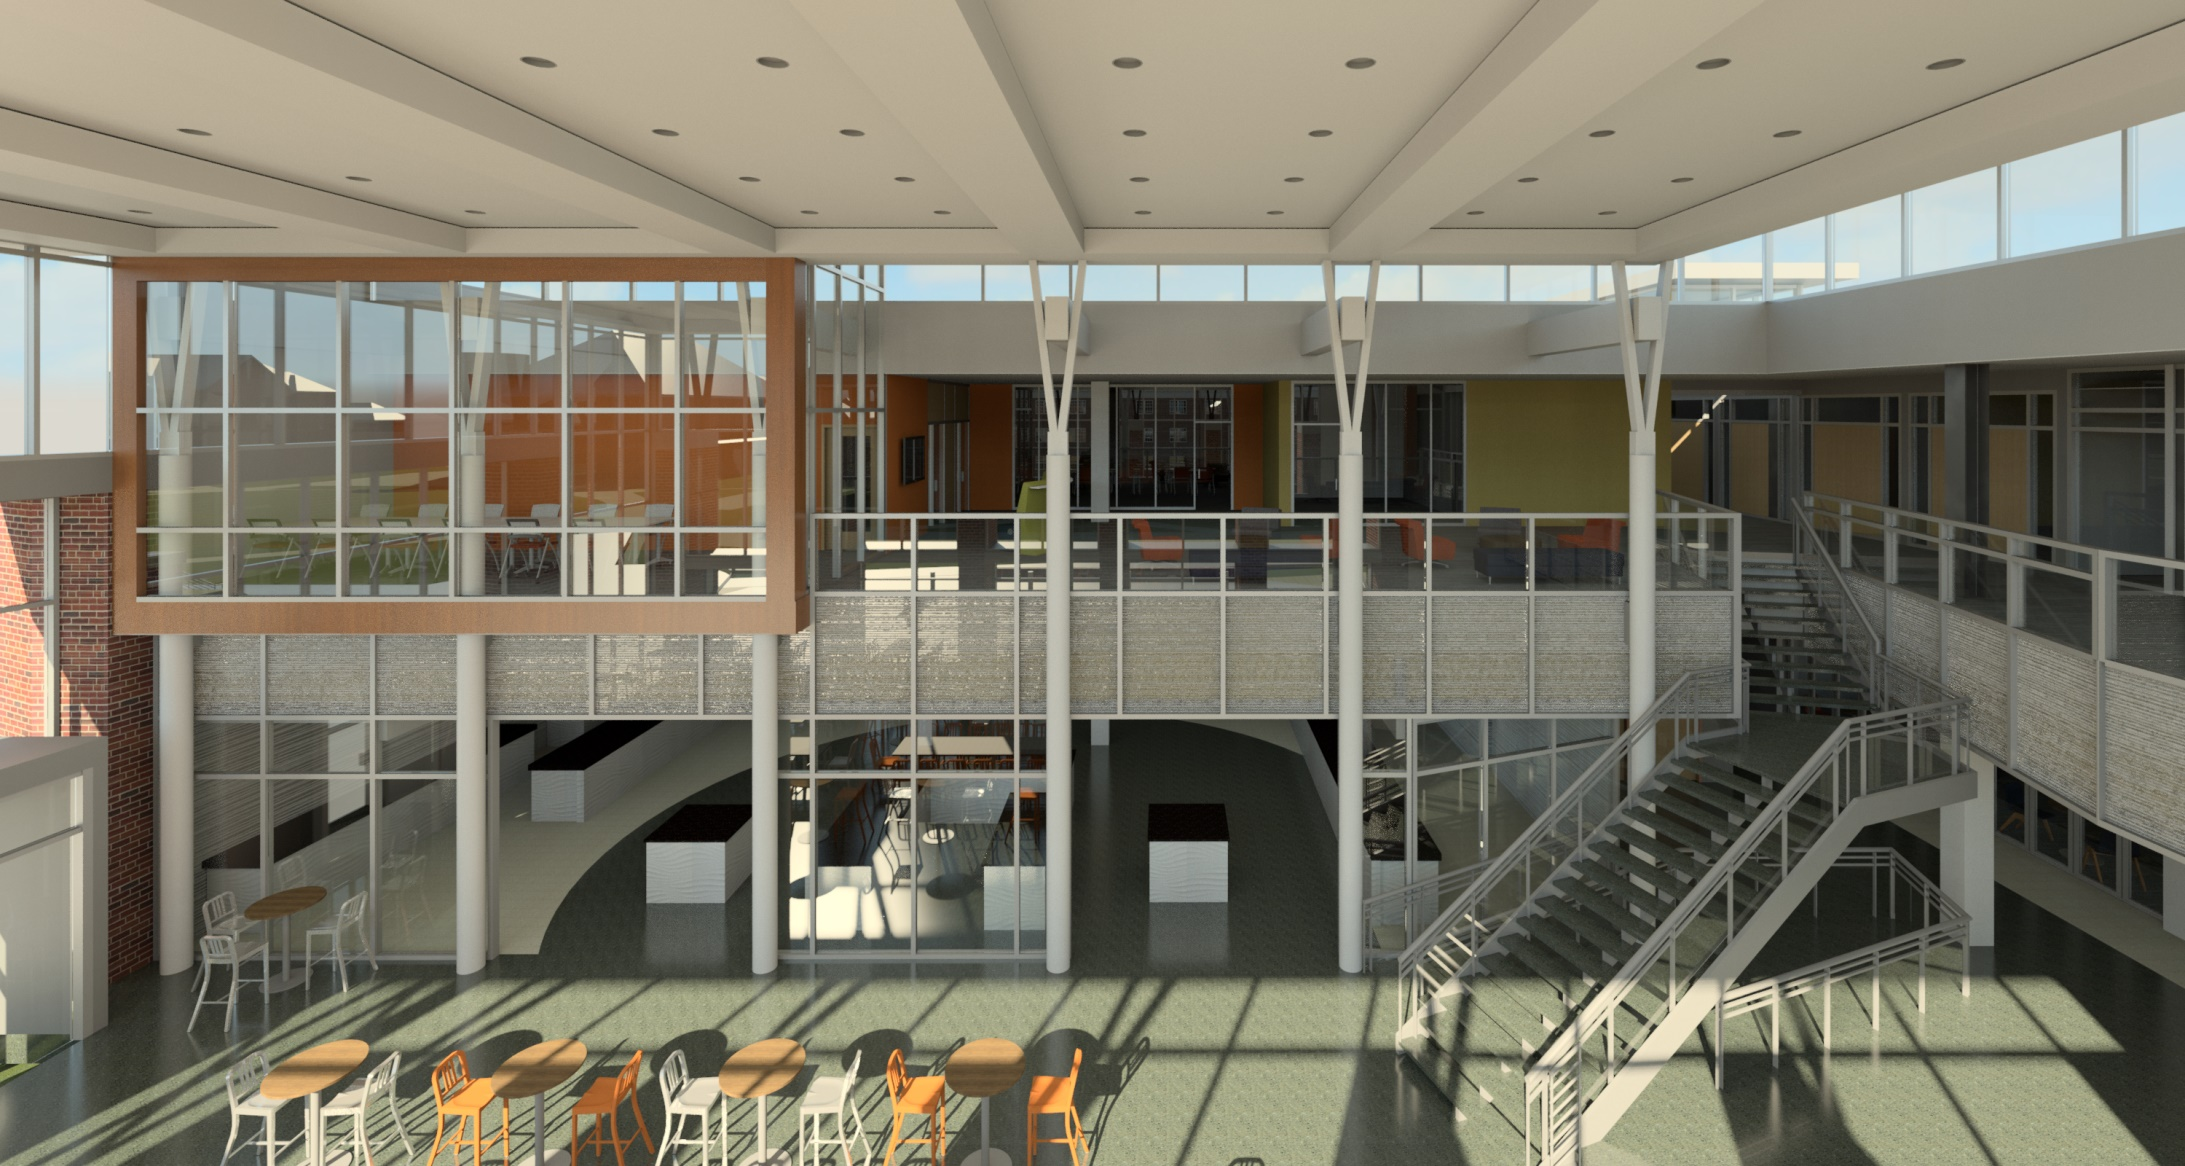 A rendering of the inside second floor of the re-designed CUB